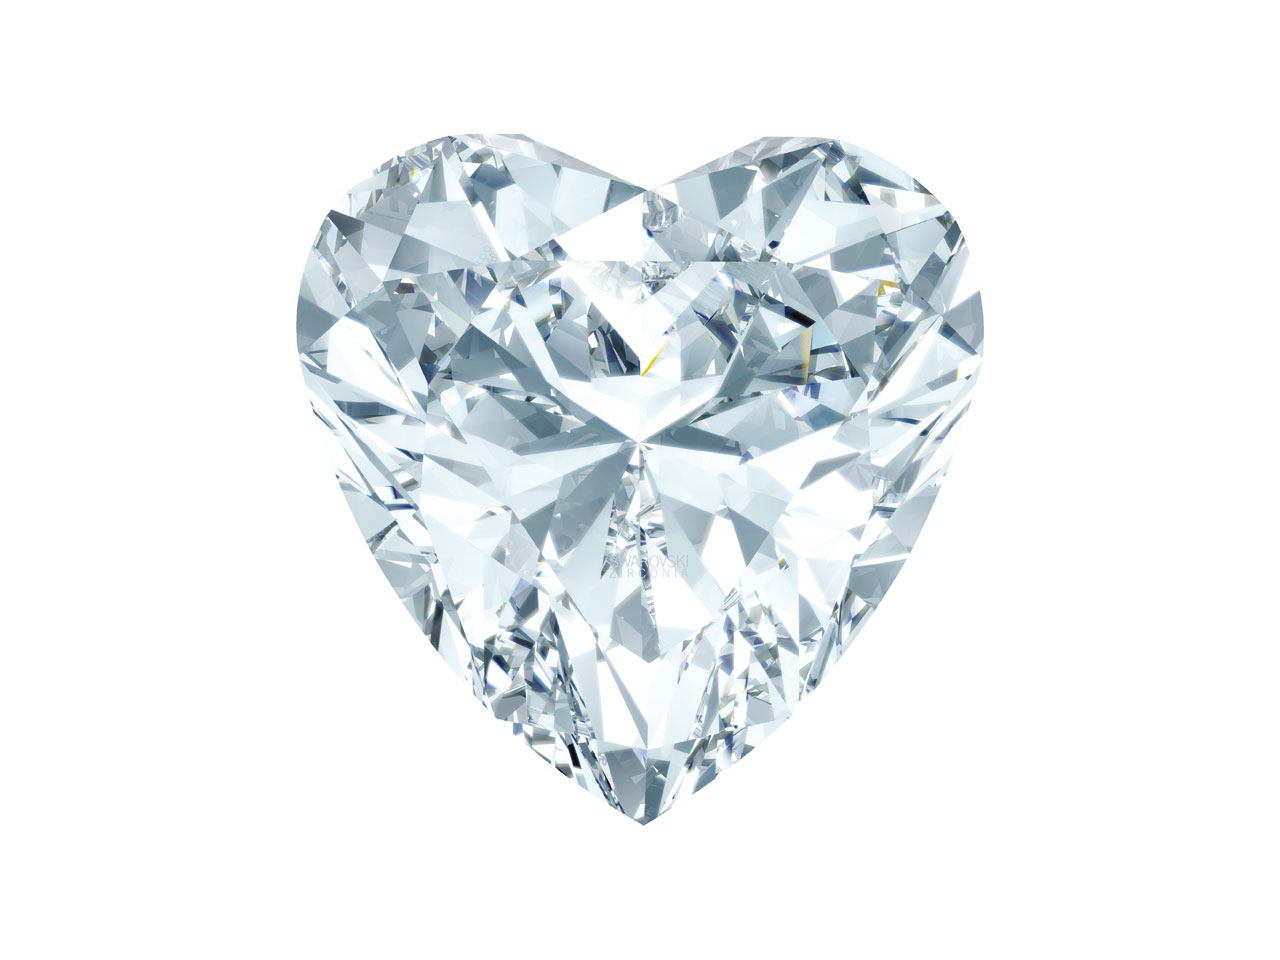 Swarovski Zirconia Heart Classic   Cut 6x6mm White